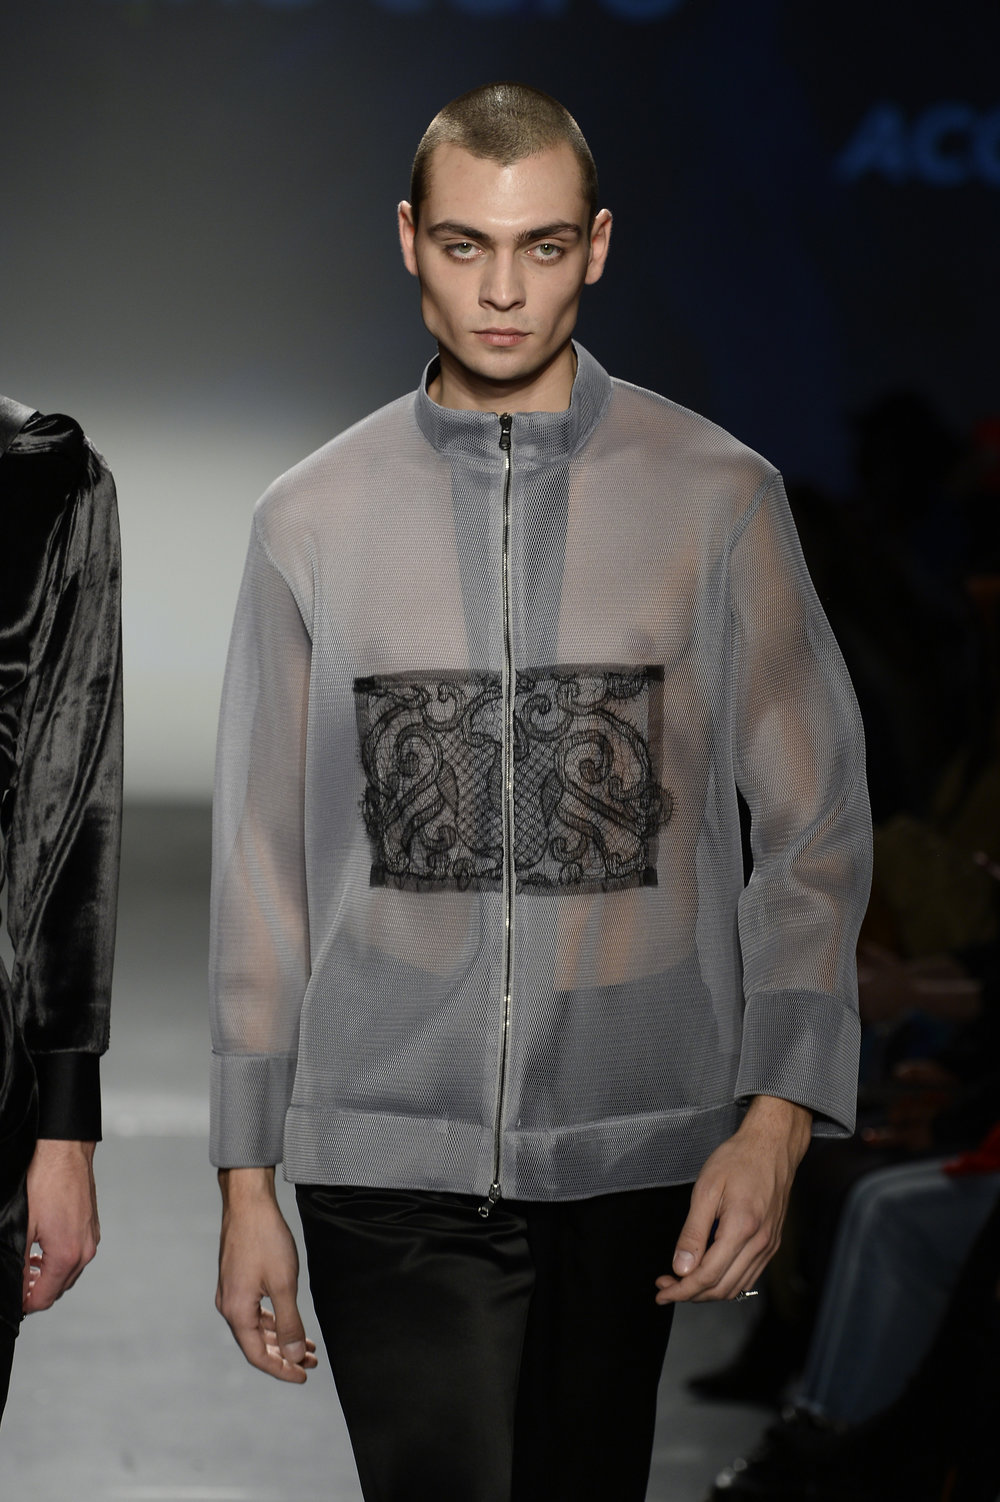 Mesh Jacket with Lace Appliqué - A gender fluid piece made from Japanese mesh and French lace.